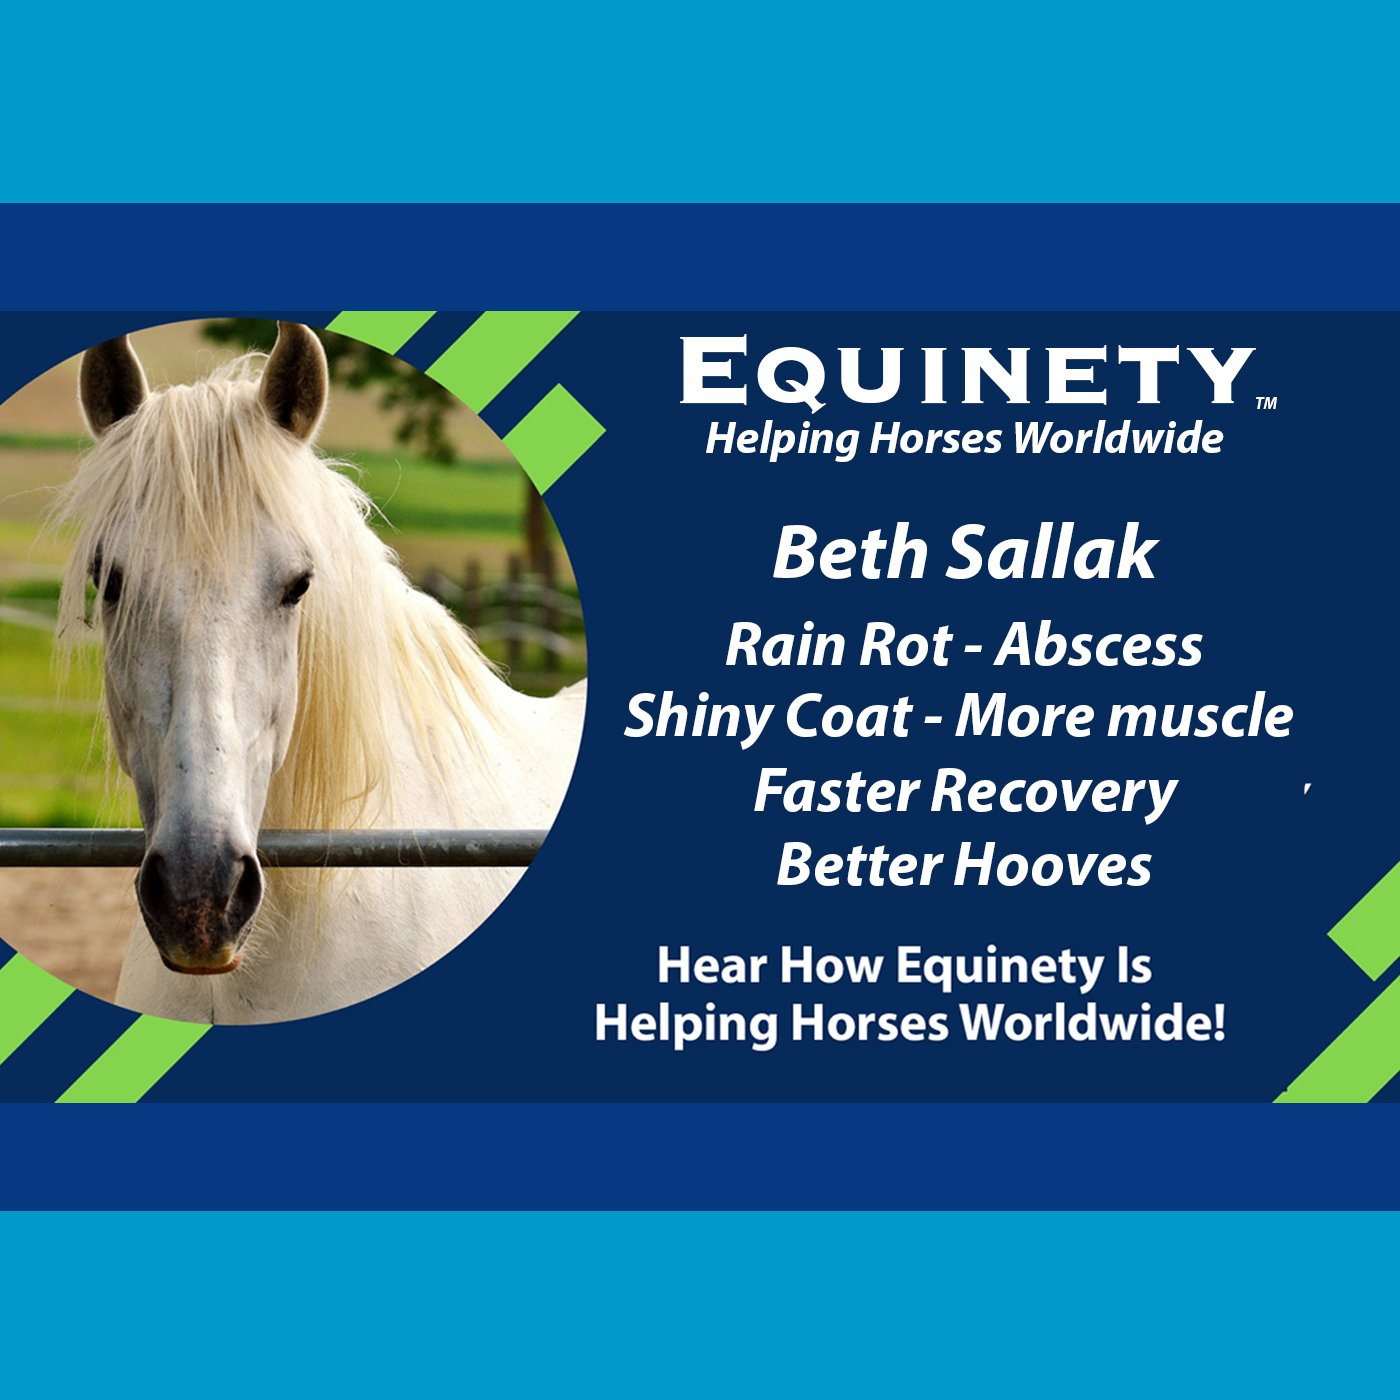 103 – Beth Sallak – 28 yrs old – Rain Rot – Abscess – Shiny Coat – More Muscle – Faster Healing – Better Hooves